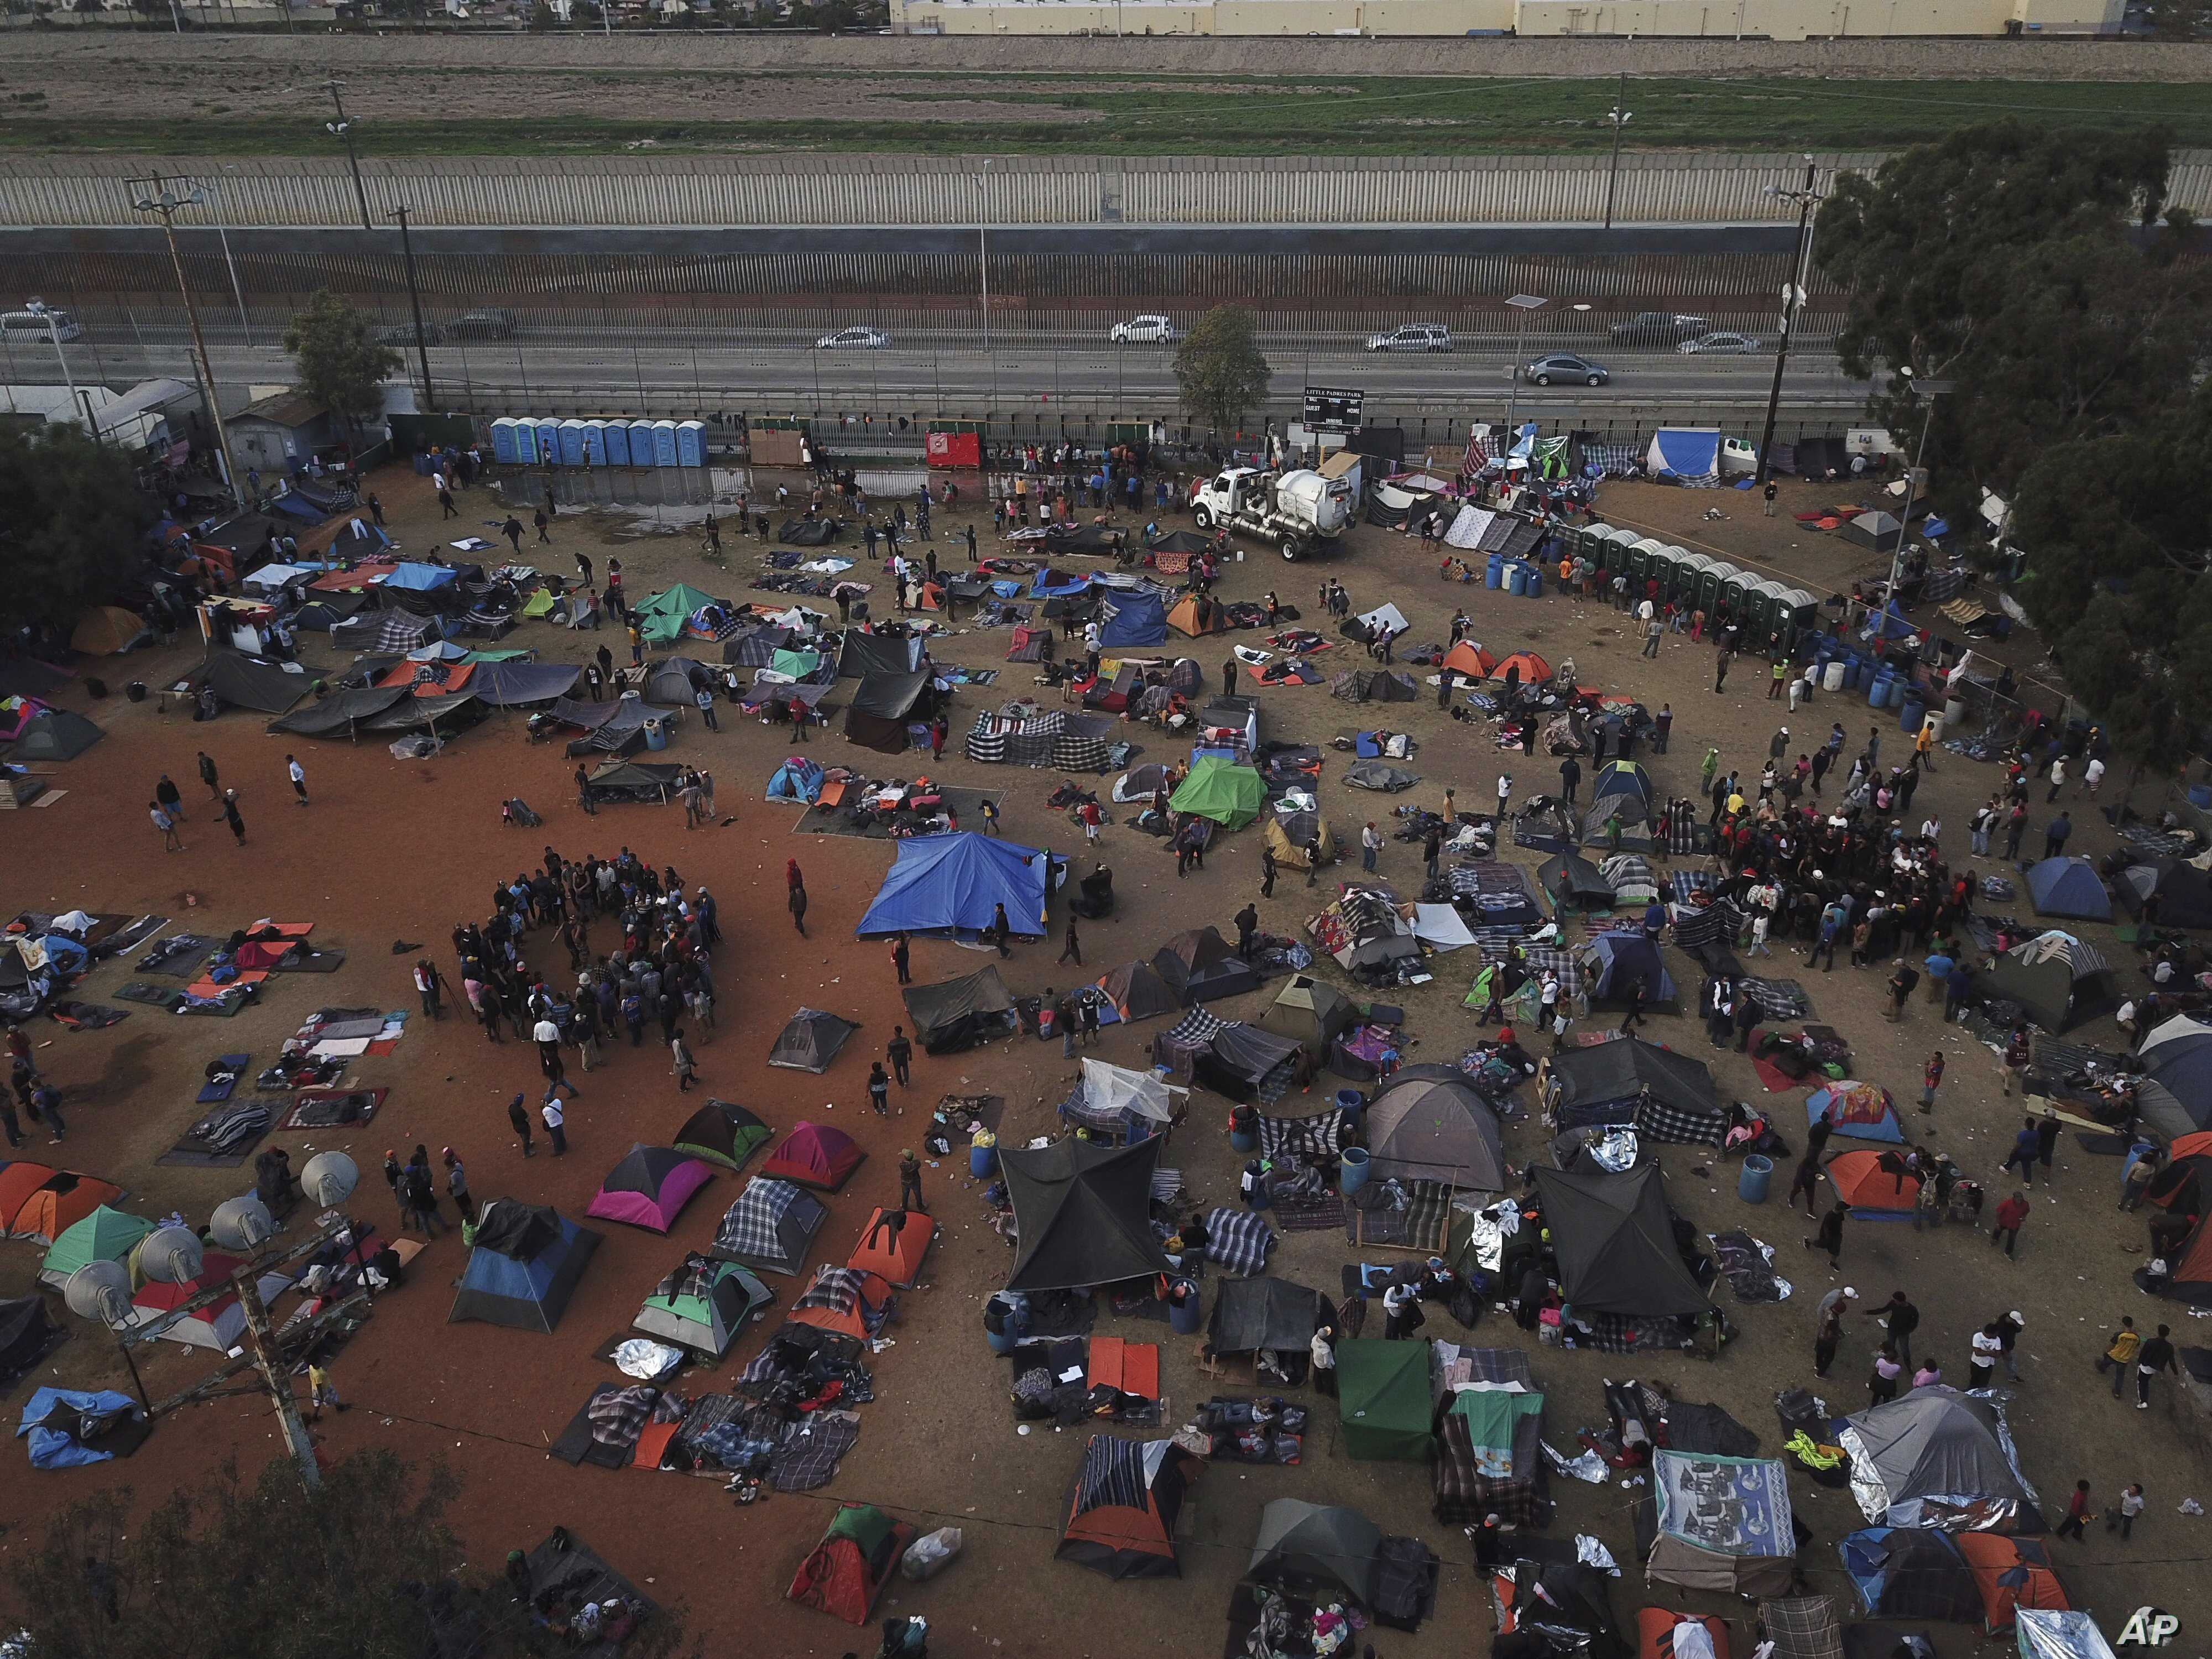 Central American migrants gather at a temporary shelter, near barriers that separate Mexico and the United States, in Tijuana, Mexico, Nov. 21, 2018.